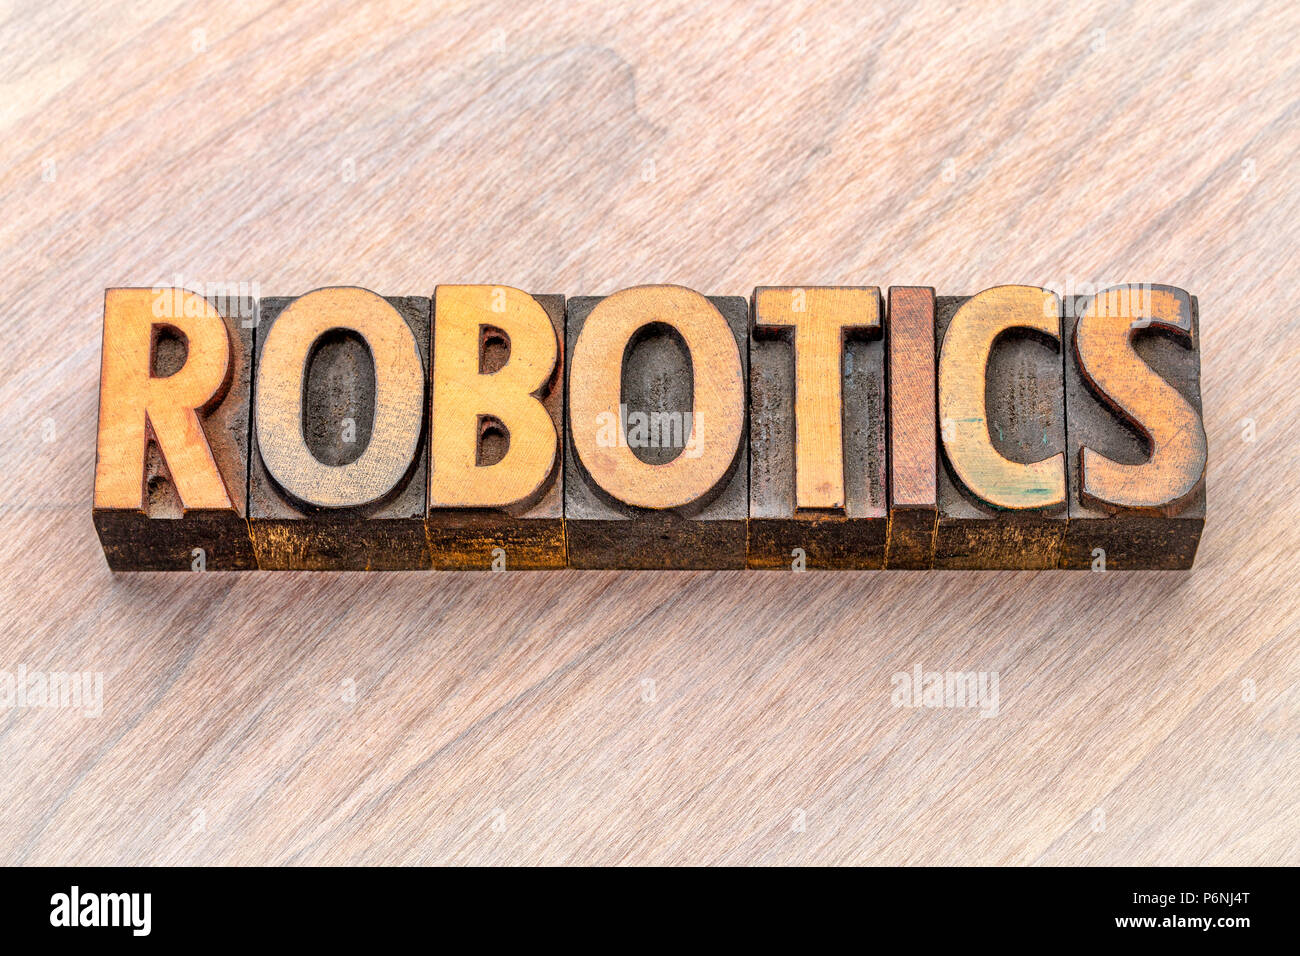 Robotics Word Abstract In Vintage Lettepress Wood Type Printing